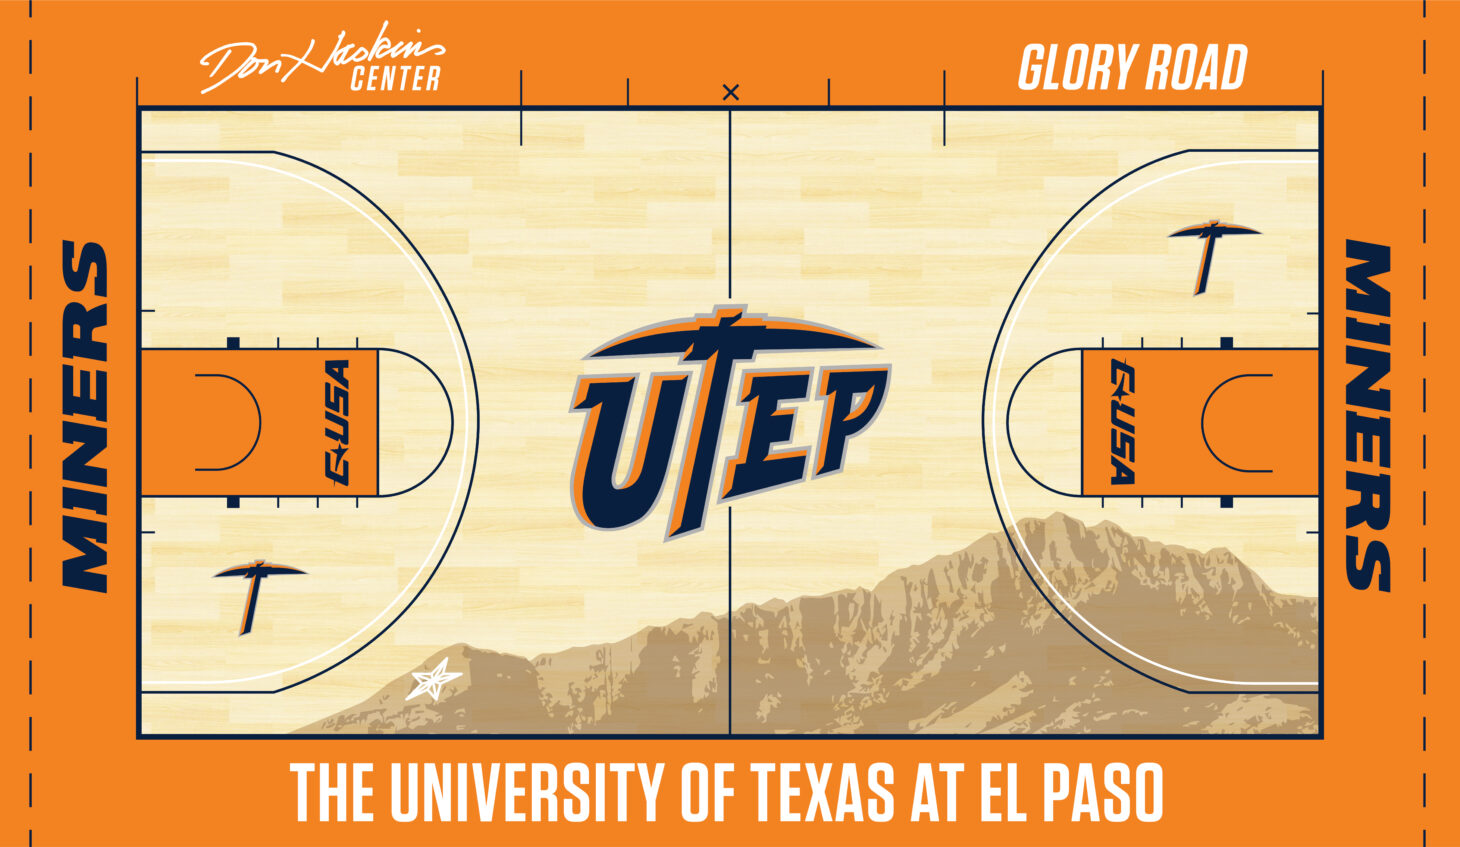 "The exciting new court design will incorporate the Franklin Mountains with El Paso's Star on the Mountain. Don Haskins's signature, the namesake of the building, will also be featured on the top left of the court, while ""Glory Road"" will be positioned on the top right – a reference to the 2006 film showcasing the story of the 1966 Texas Western NCAA National Championship team.  